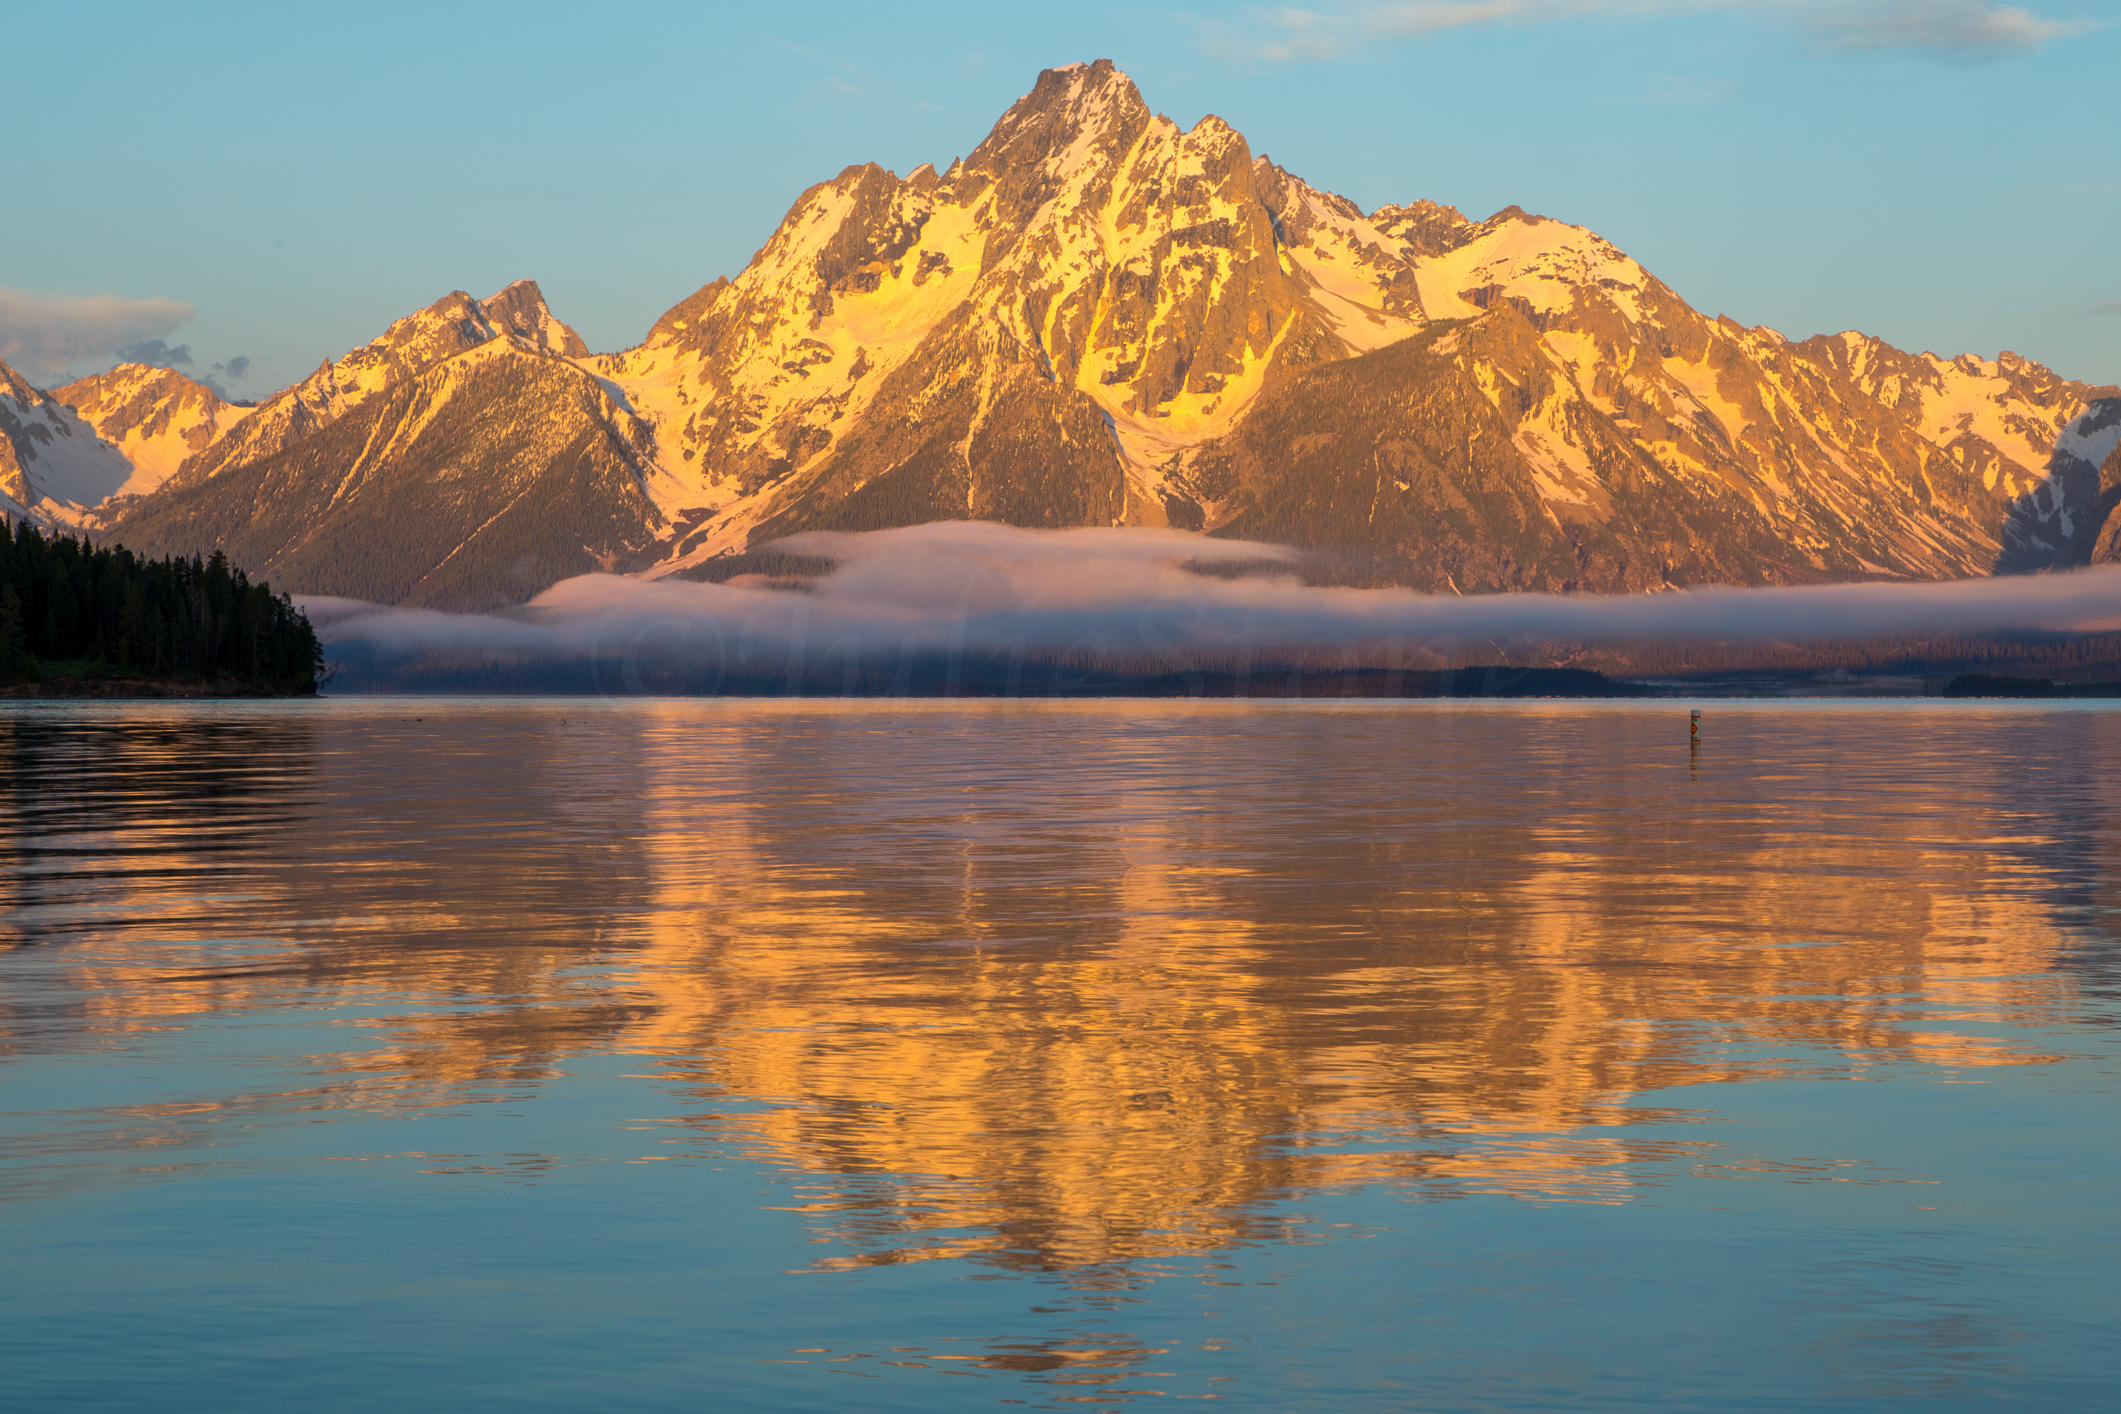 Colter Bay, Image # 3970